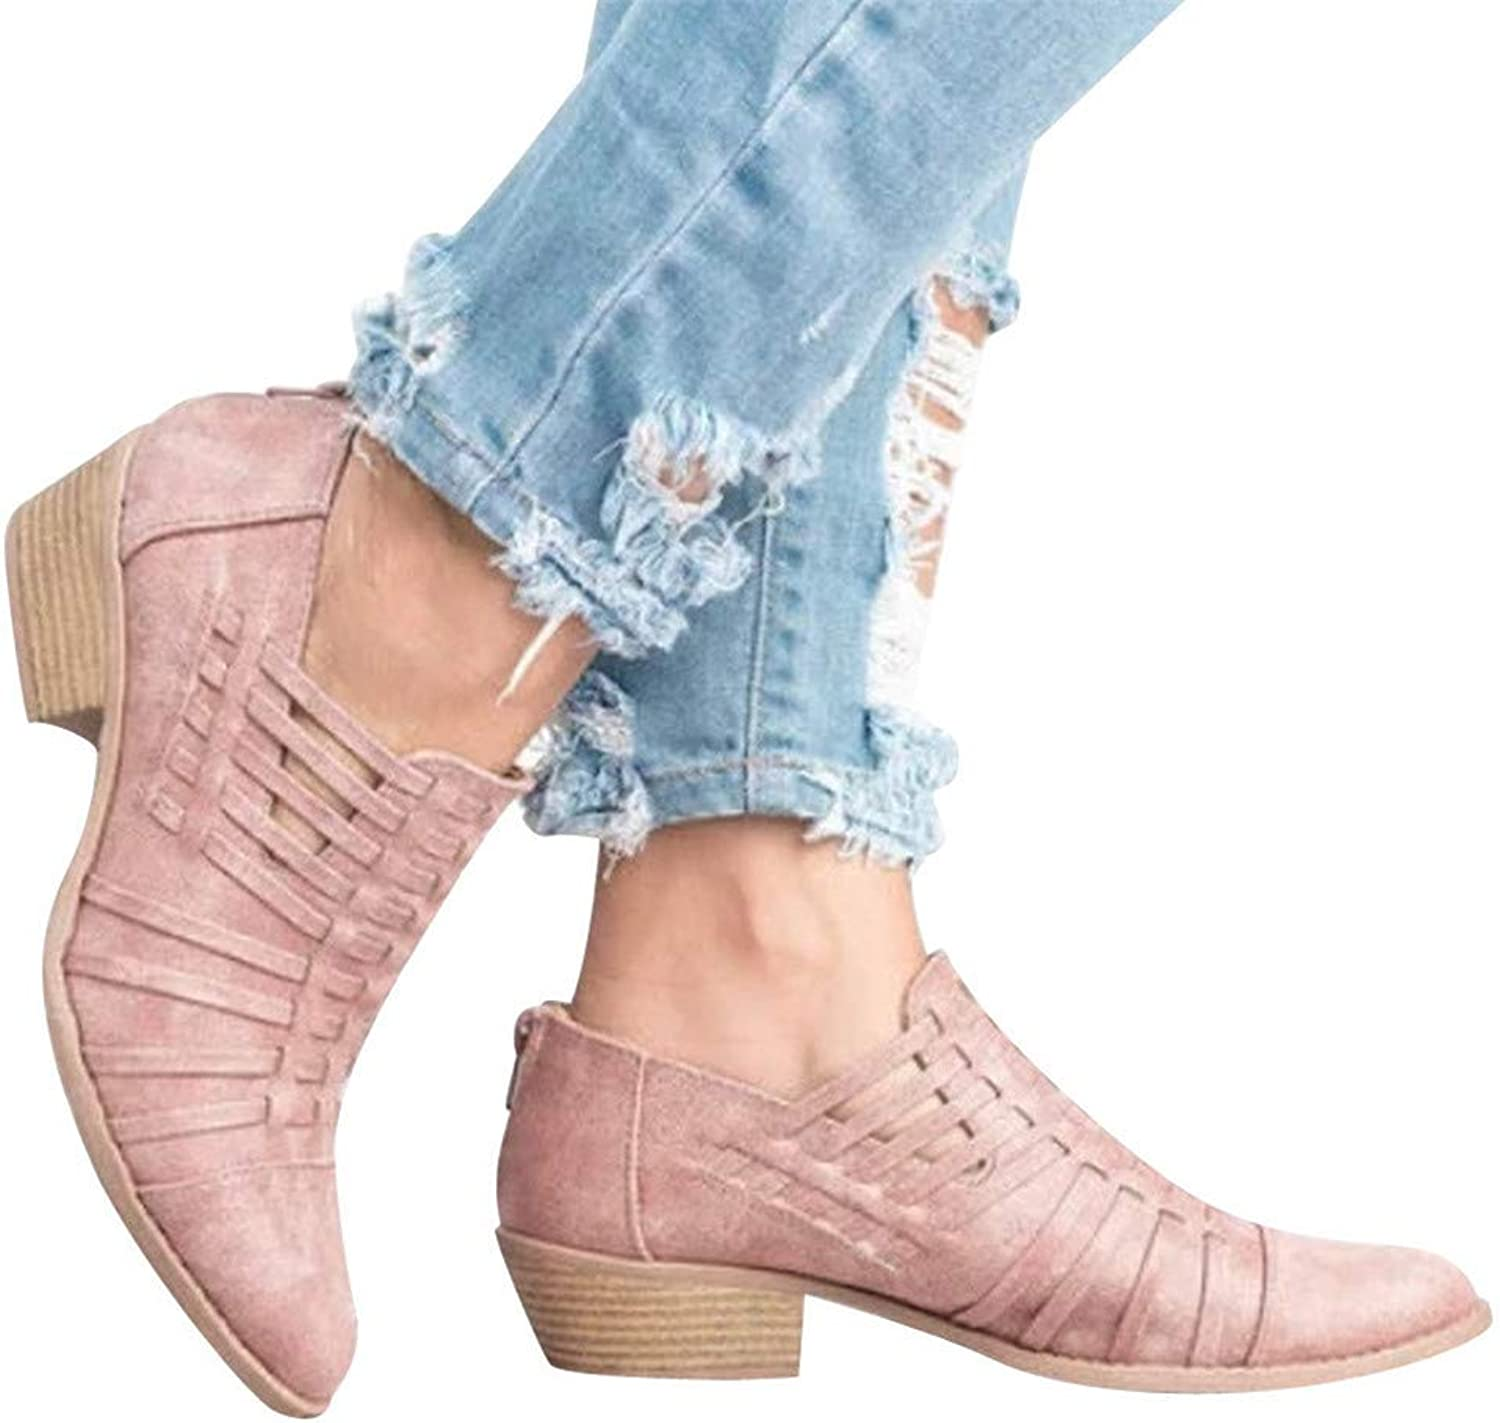 Women's Solid color shoes Ponited Toe Wedge shoes Sandals Booties Zipper Square Heel Single shoes(Pink,44)